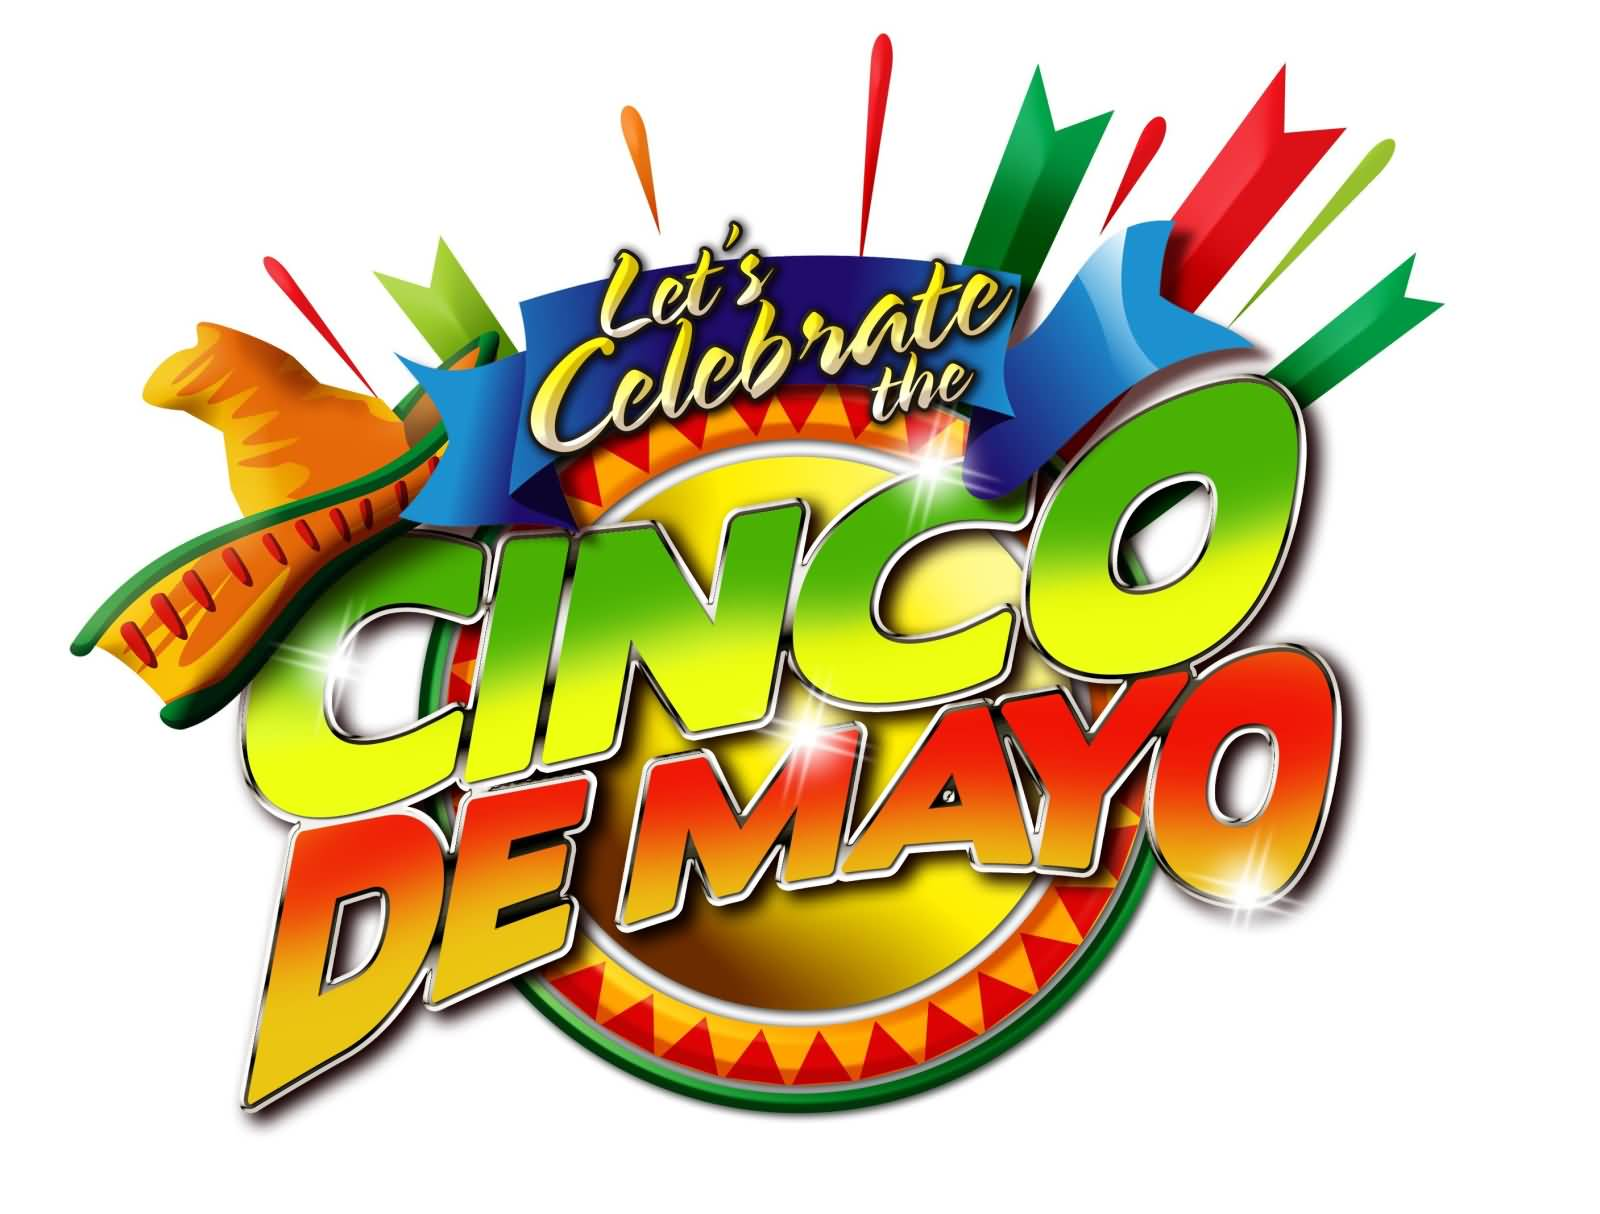 Lets celebrate the cinco de mayo greetings m4hsunfo